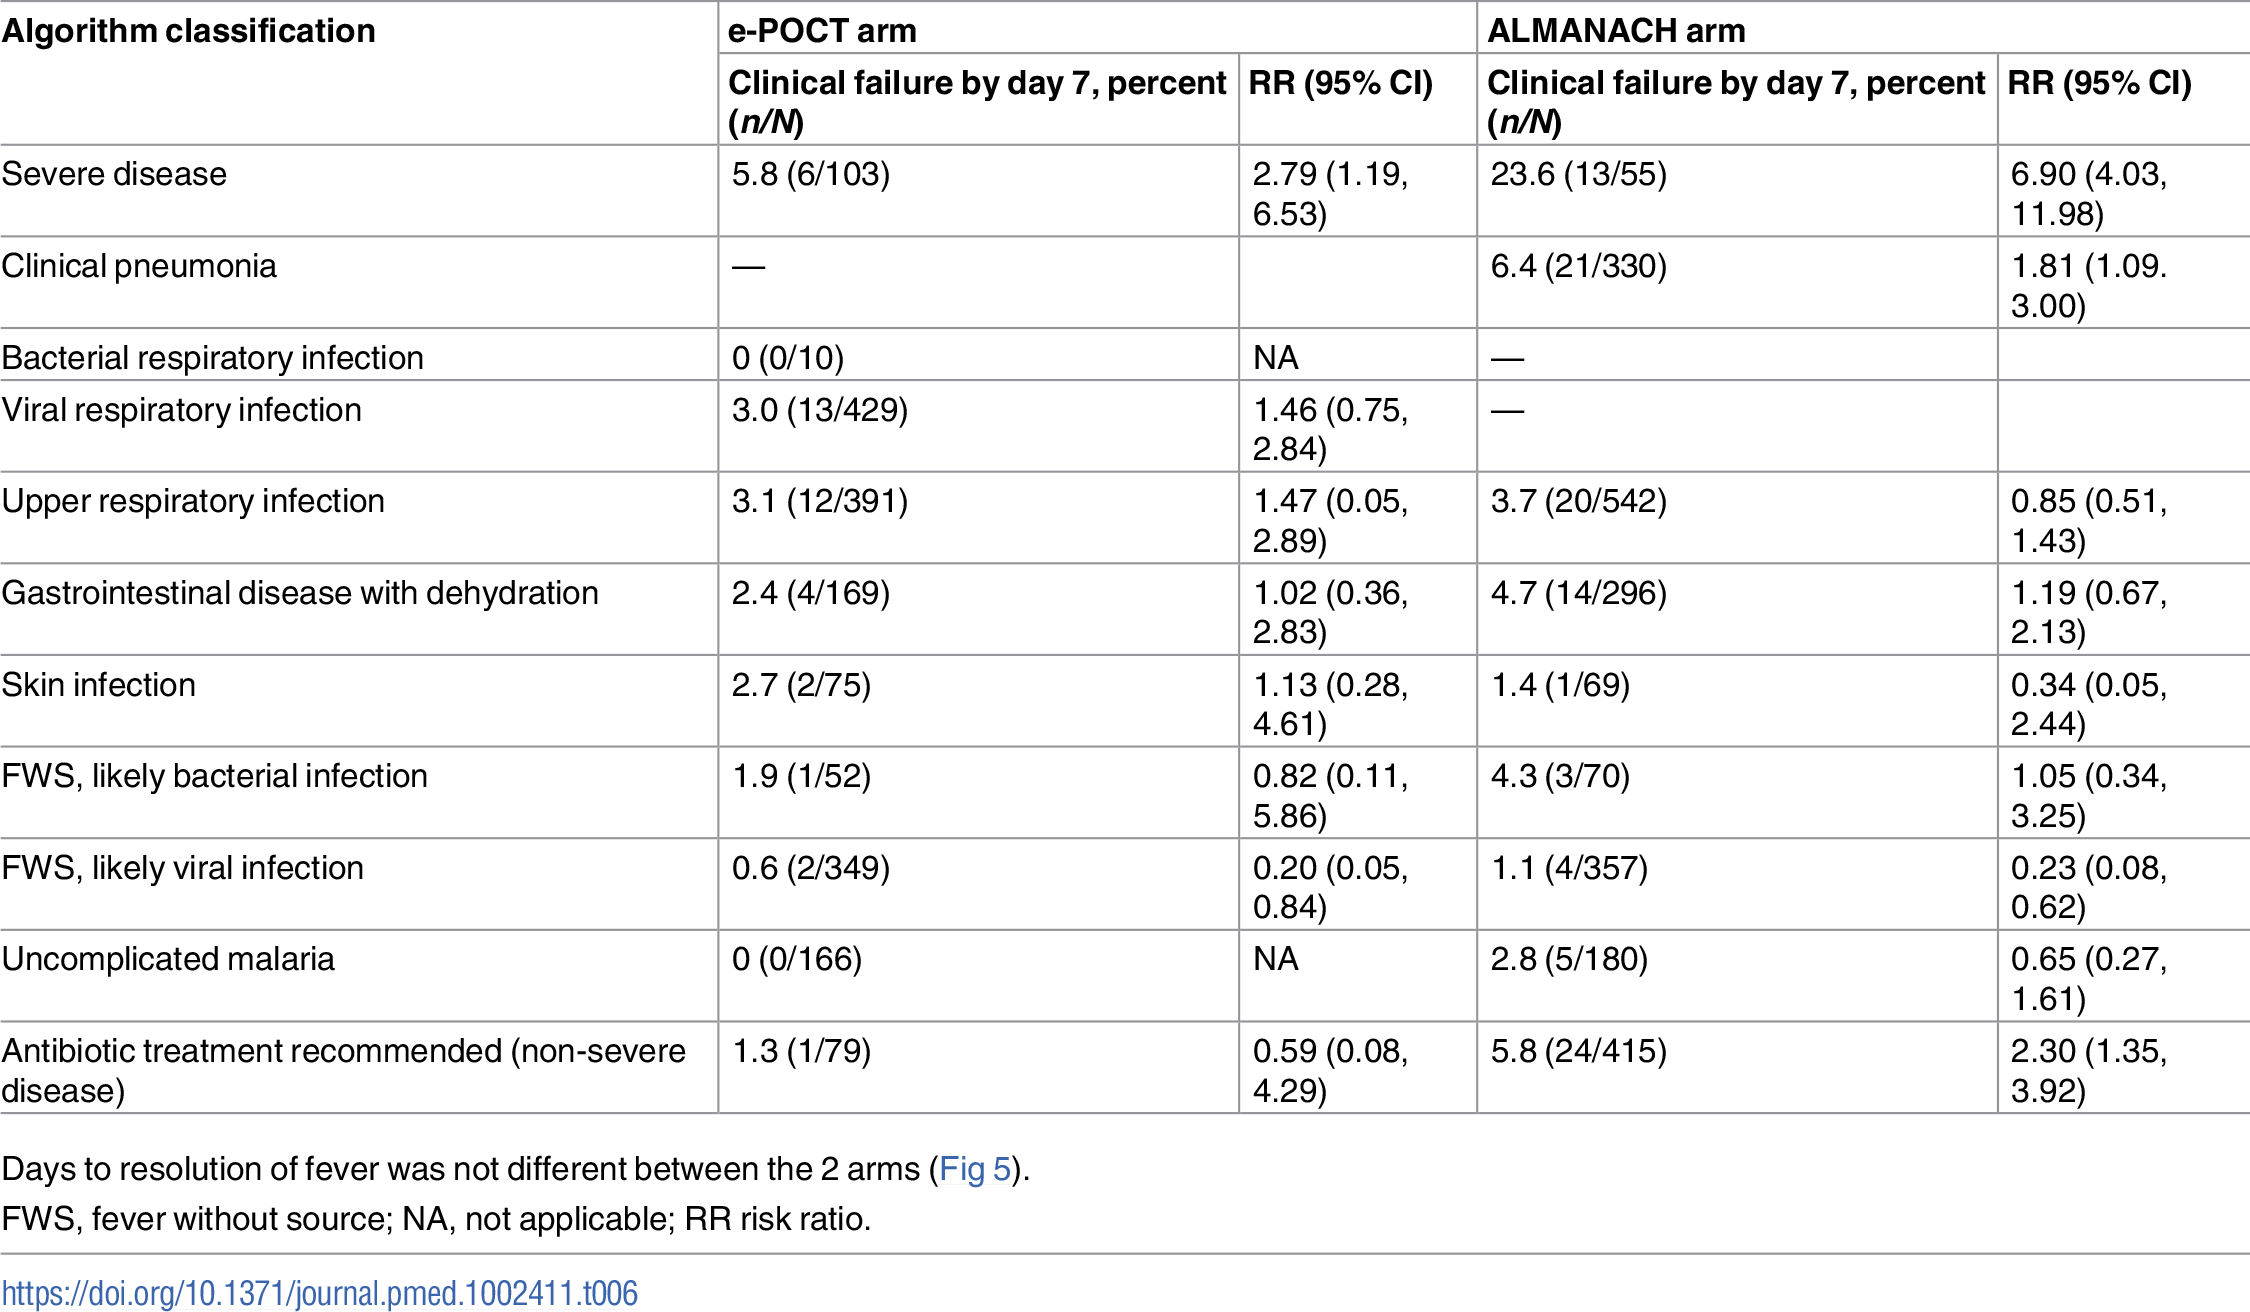 Association between clinical failure and disease classification.